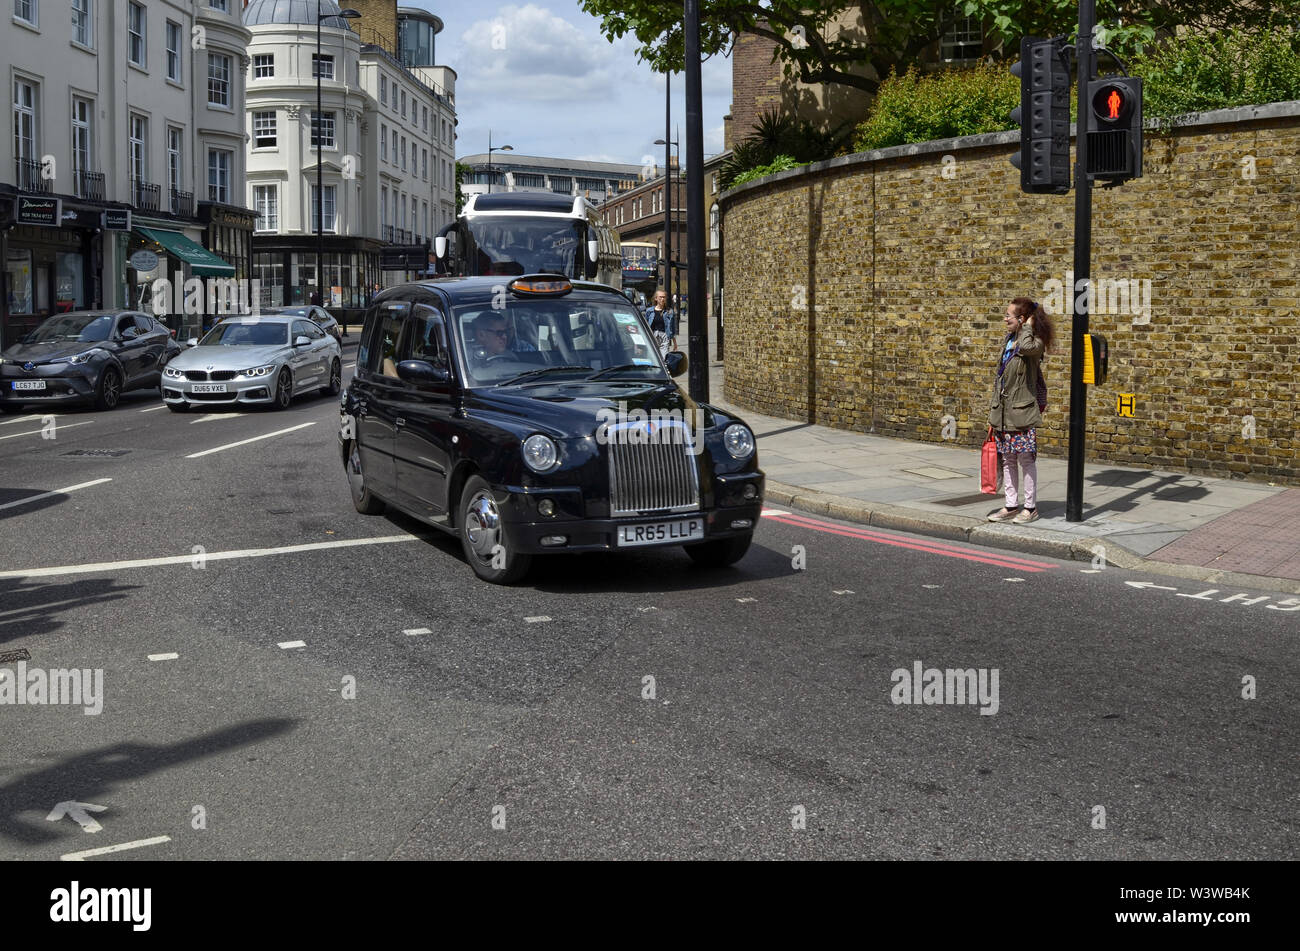 London, United Kingdom, June 2018. London taxis, called cabs, are one of the symbols of the city. Classically of strictly black color. Sometimes with Stock Photo